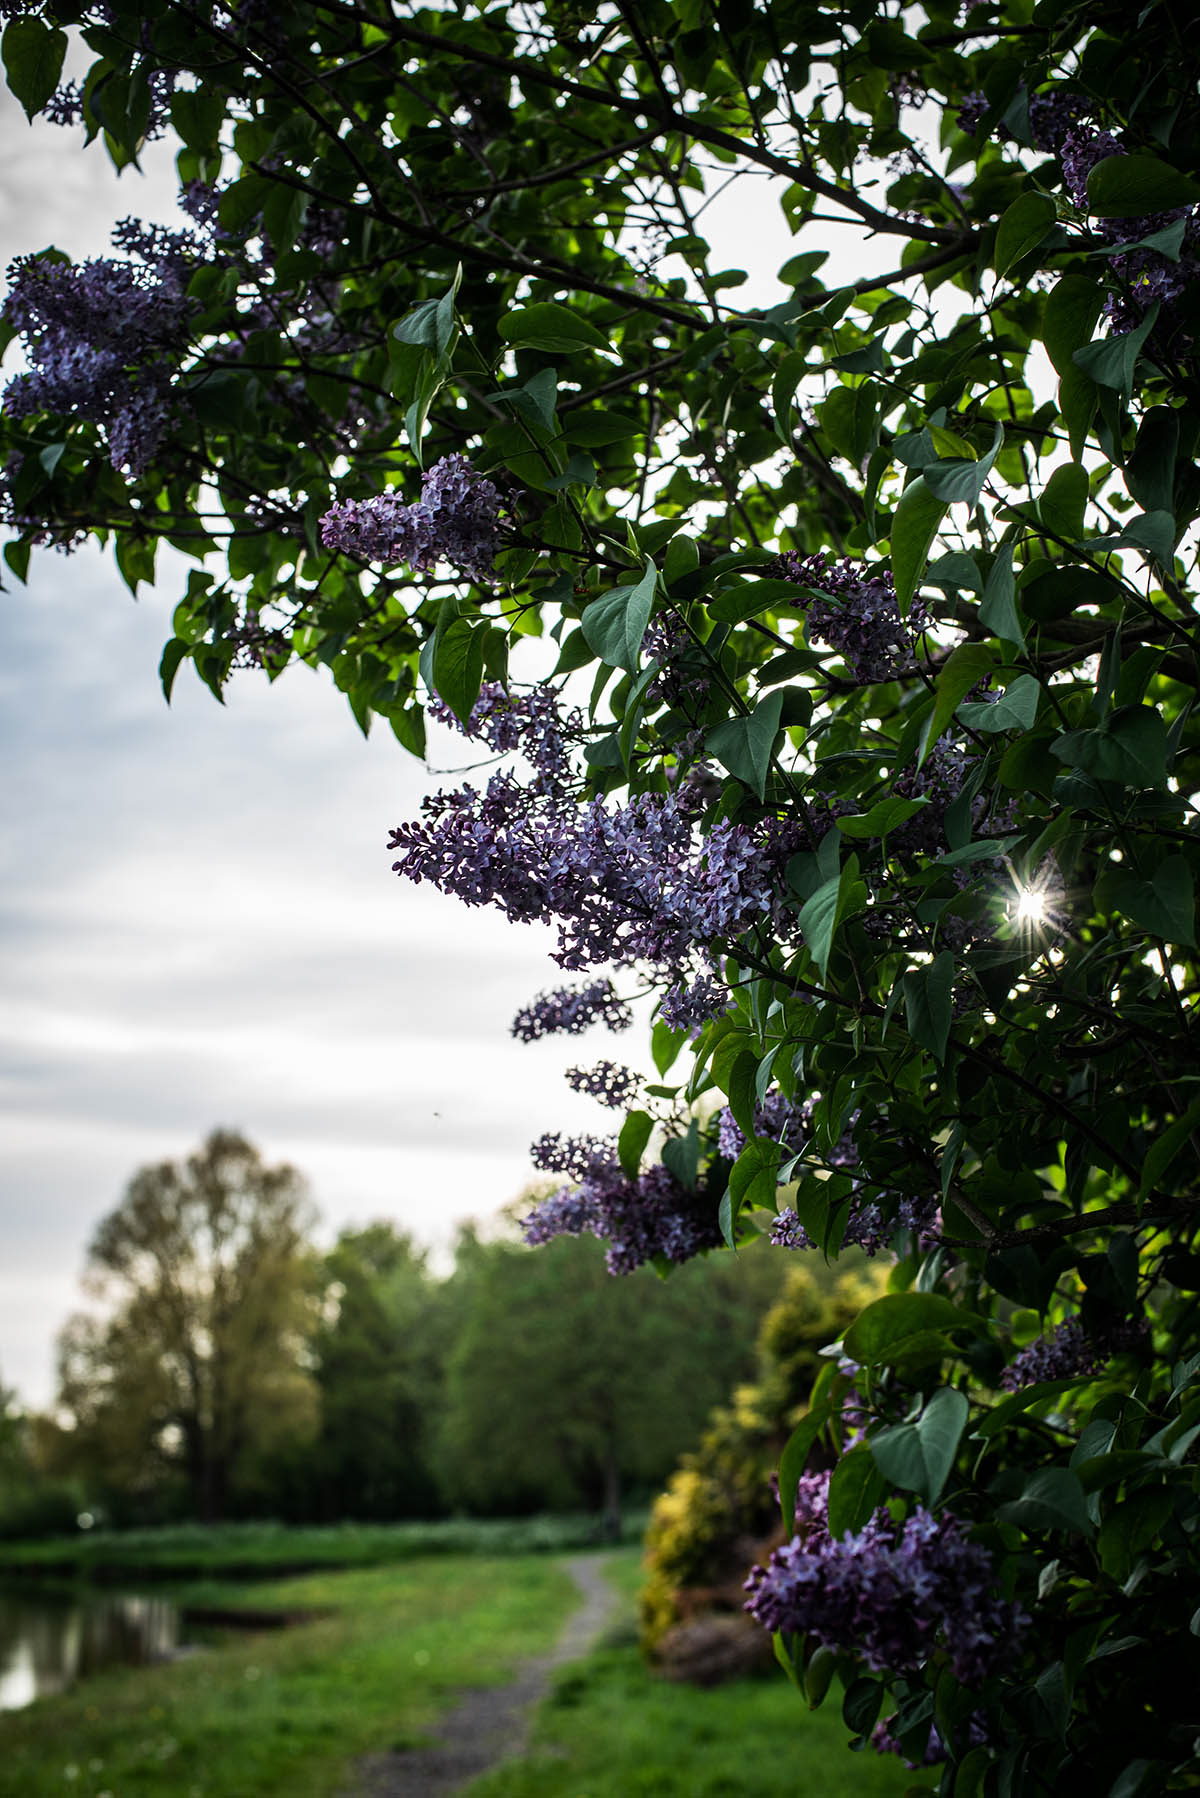 Lilac bush in foreground with sun peeking through branches and park behind.